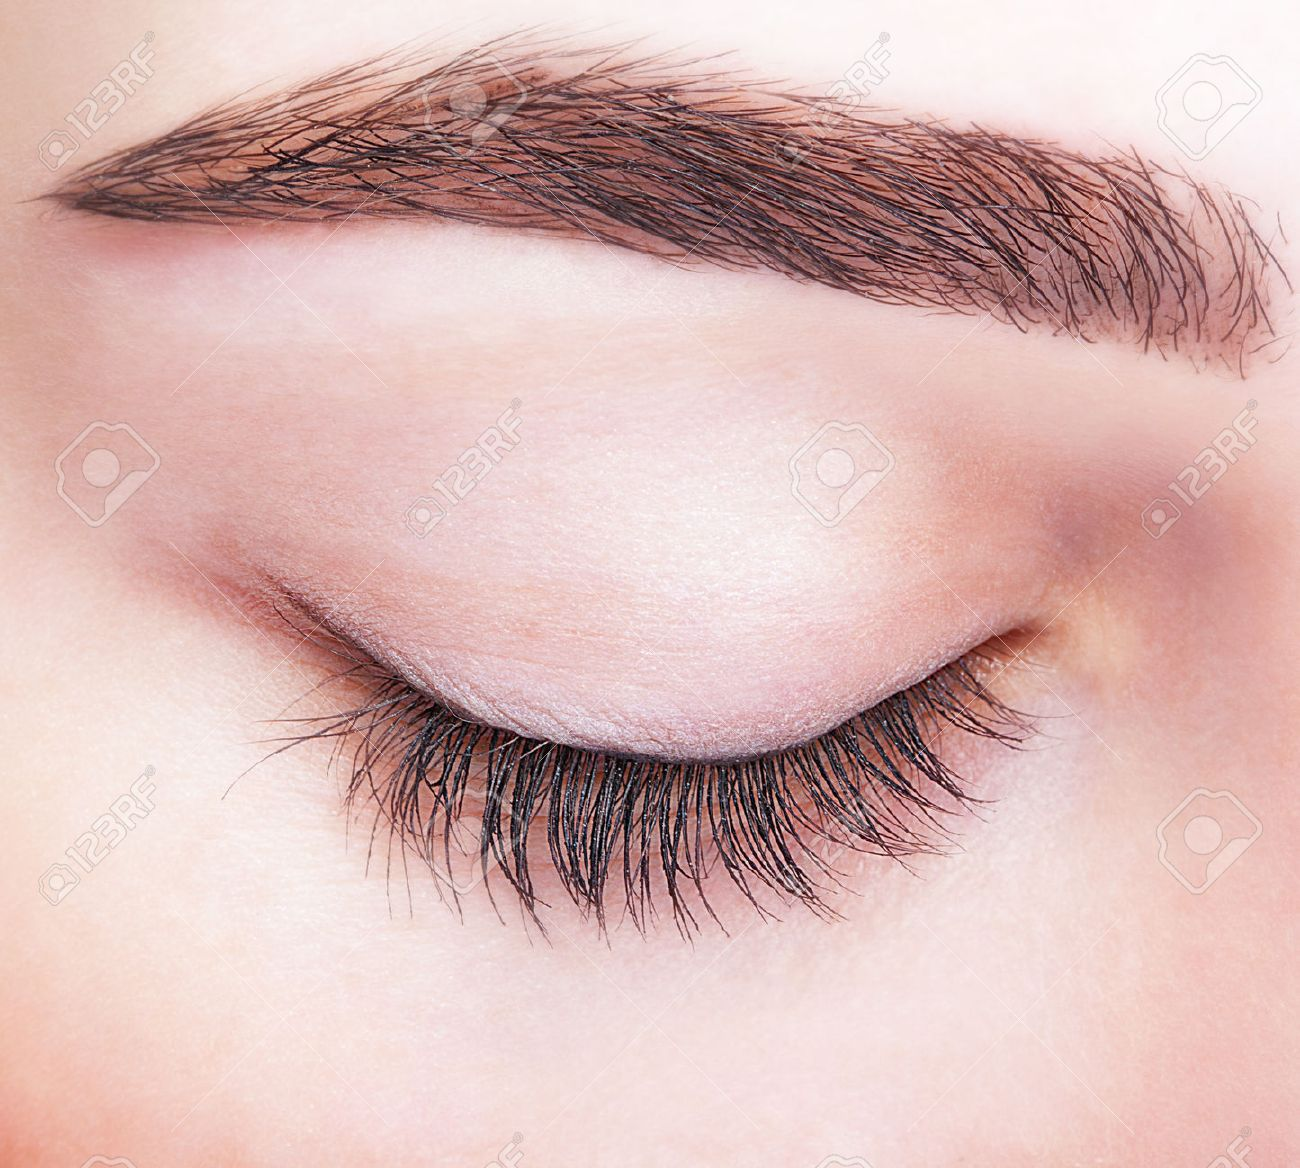 Closeup shot of female closed eye and brows with day makeup - 37028664